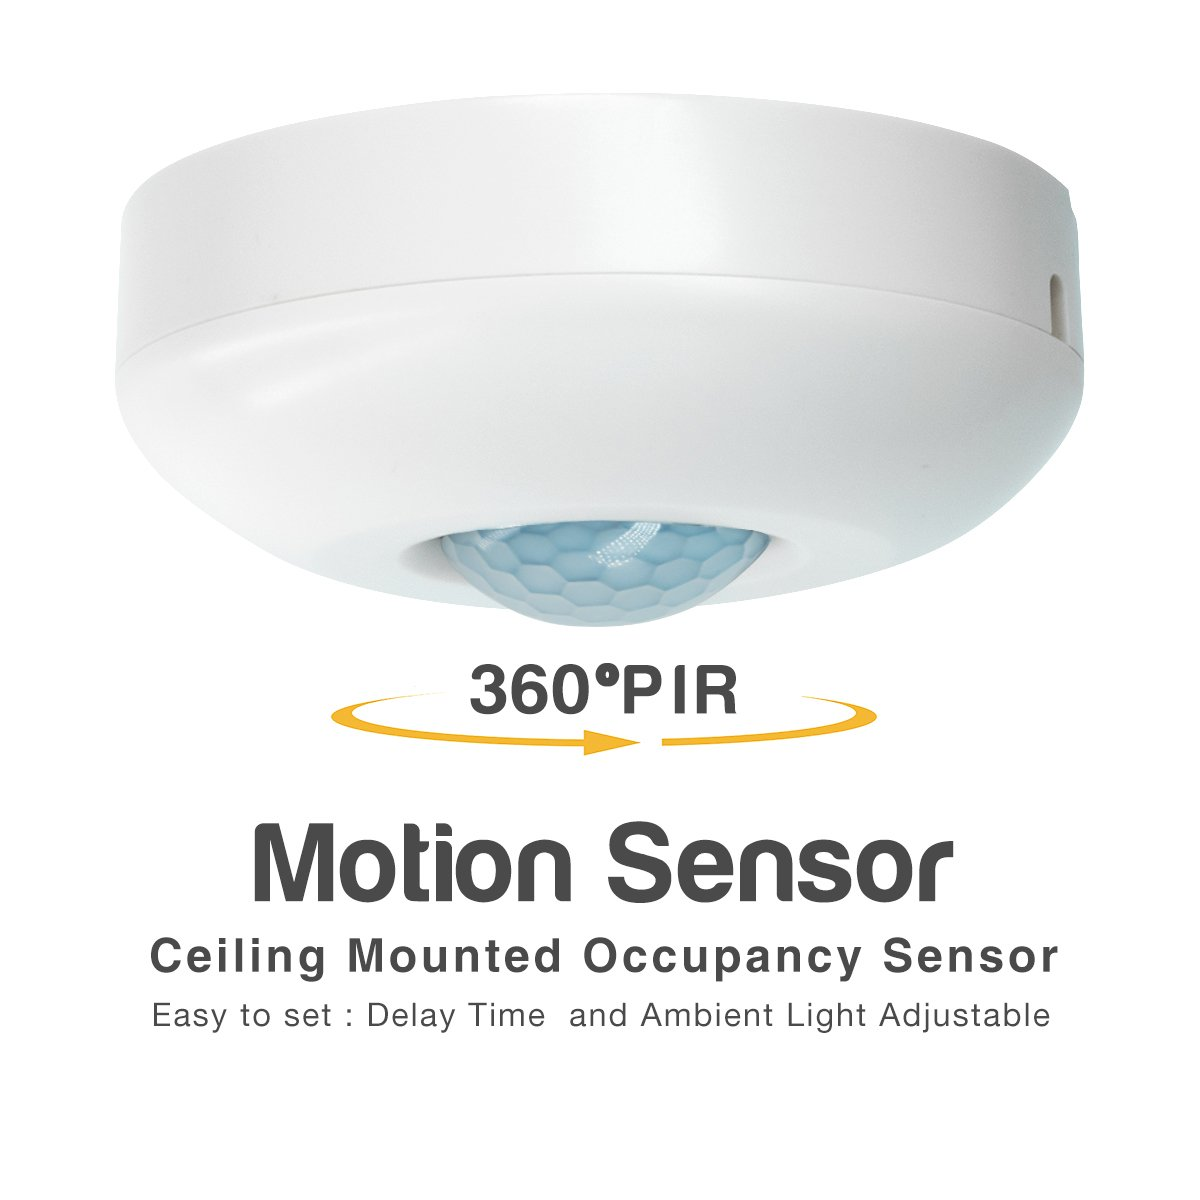 Motion Sensor Switch - Sensky BS019B Ceiling Mounted Automactic Switch DC 10V to 30V Human Body Infrared, Max 30 Minutes Time Delay and Ambient Light Sensor Adjustable Light Switch for Indoor Lighting